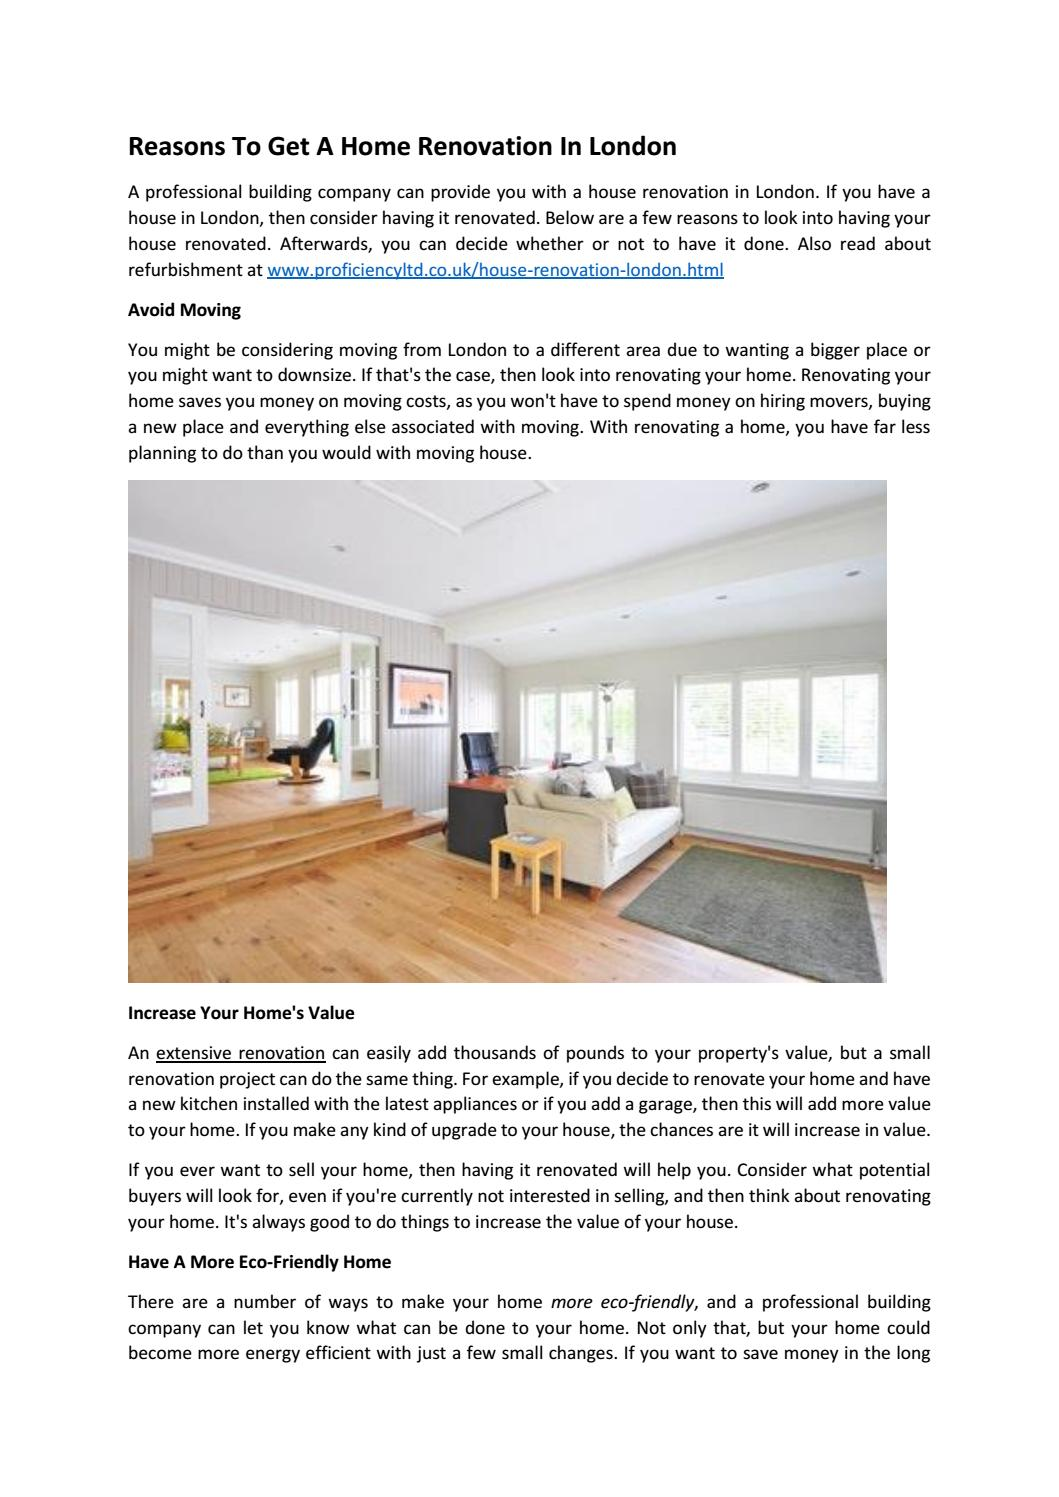 Reasons To Get A Home Renovation In London By Proficiency ...